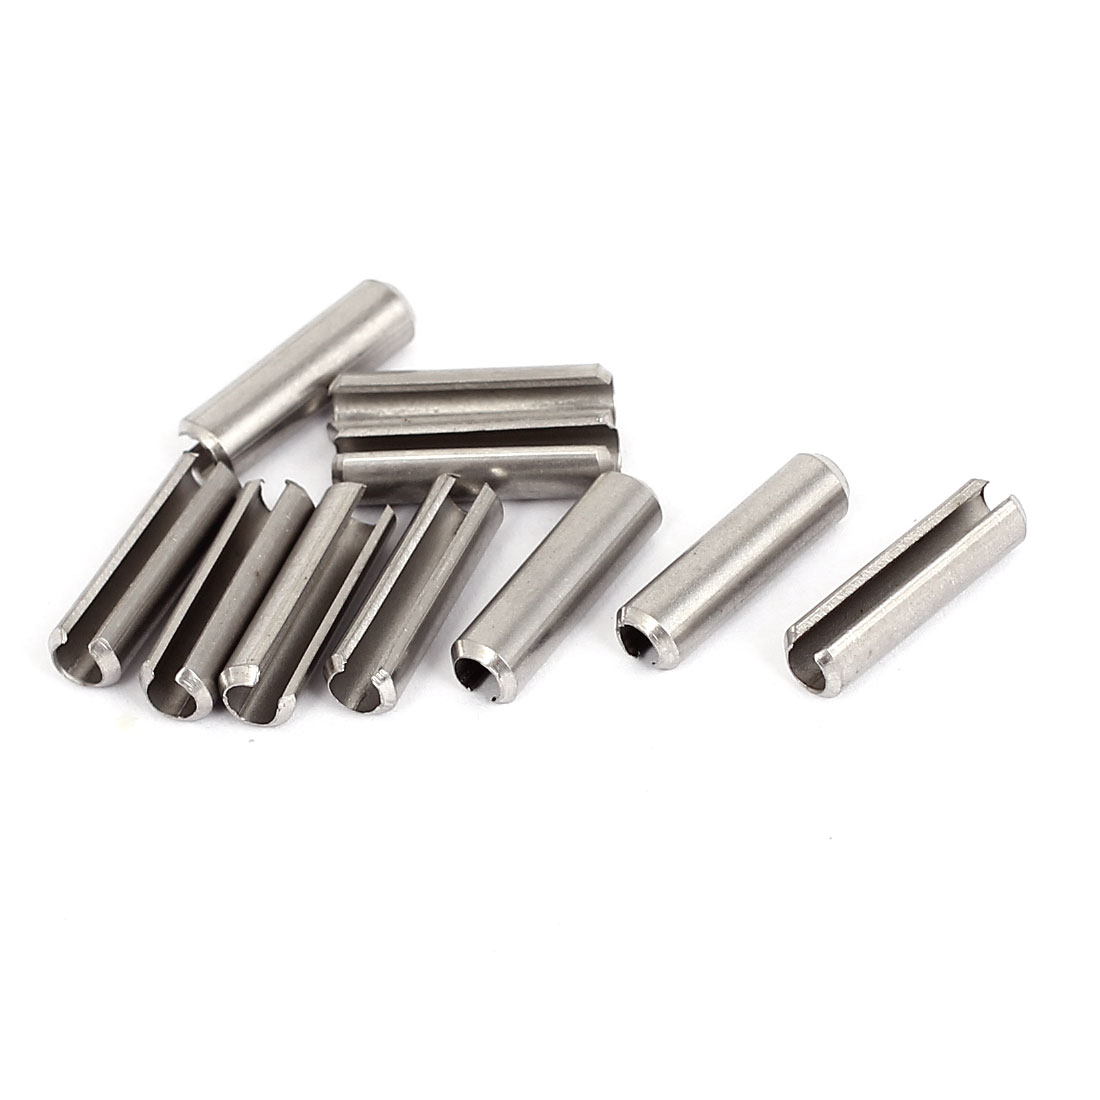 M5x20mm 304 Stainless Steel Split Spring Roll Dowel Pins Fasteners 10Pcs